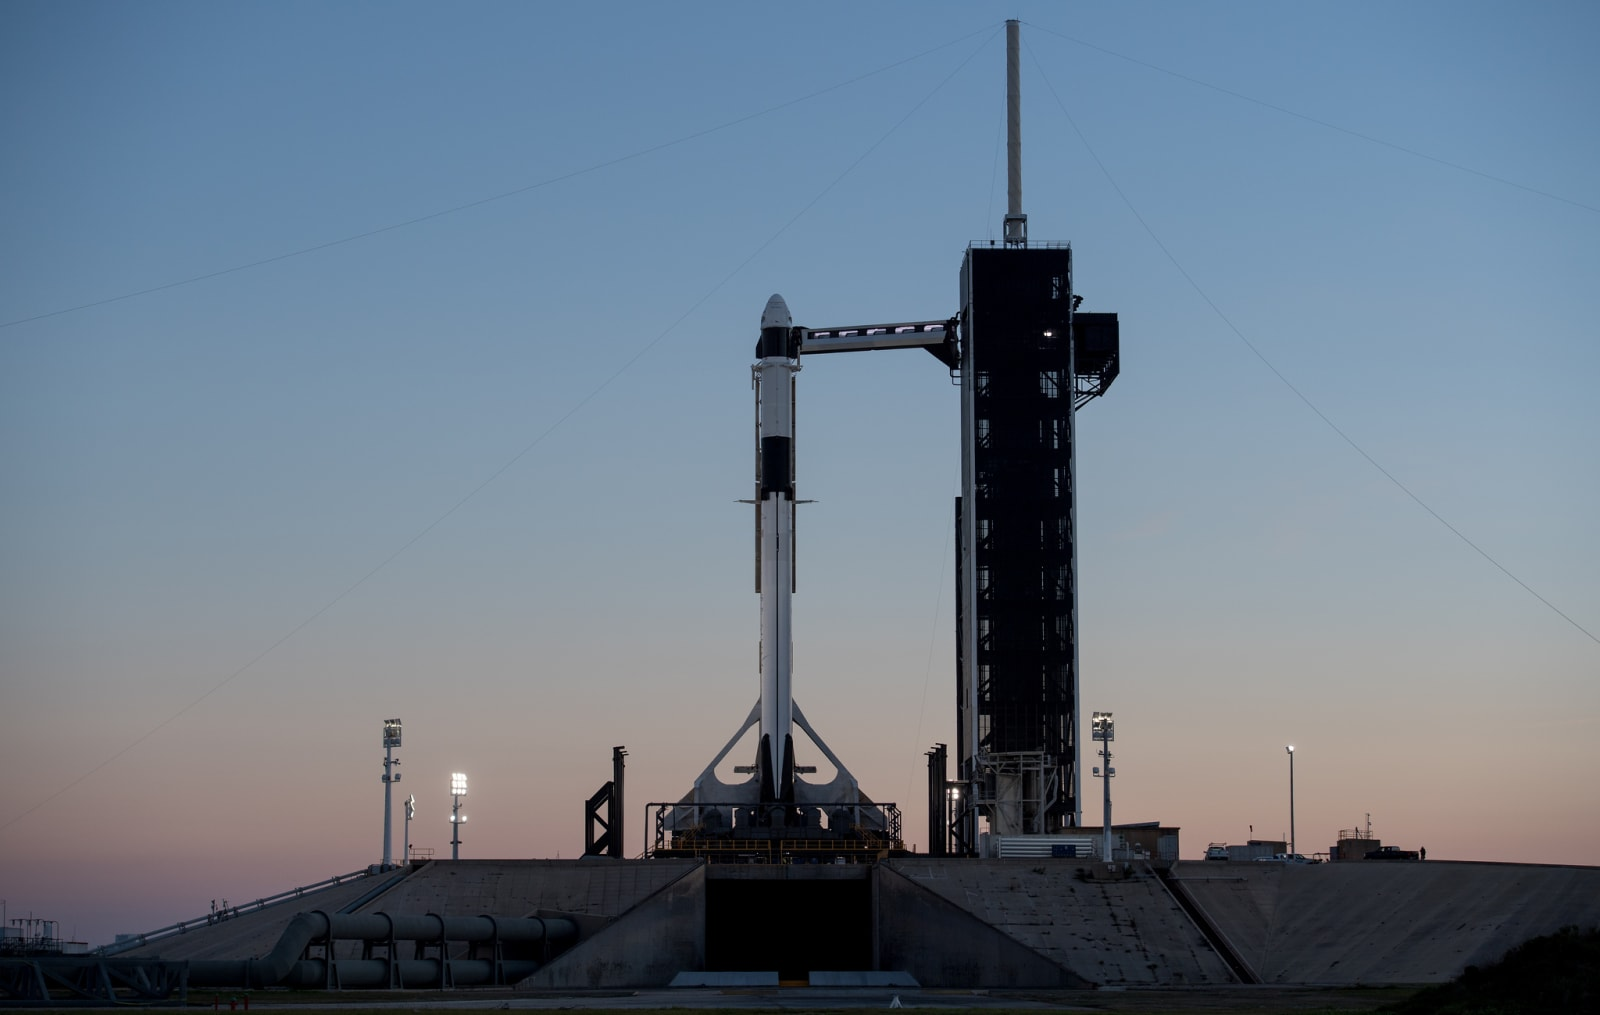 A SpaceX Falcon 9 rocket with the company's Crew Dragon spacecraft onboard is seen after being into a vertical position on the launch pad at Launch Complex 39A as preparations continue for the Demo-1 mission, Feb. 28, 2019 at the Kennedy Space Center in Florida.